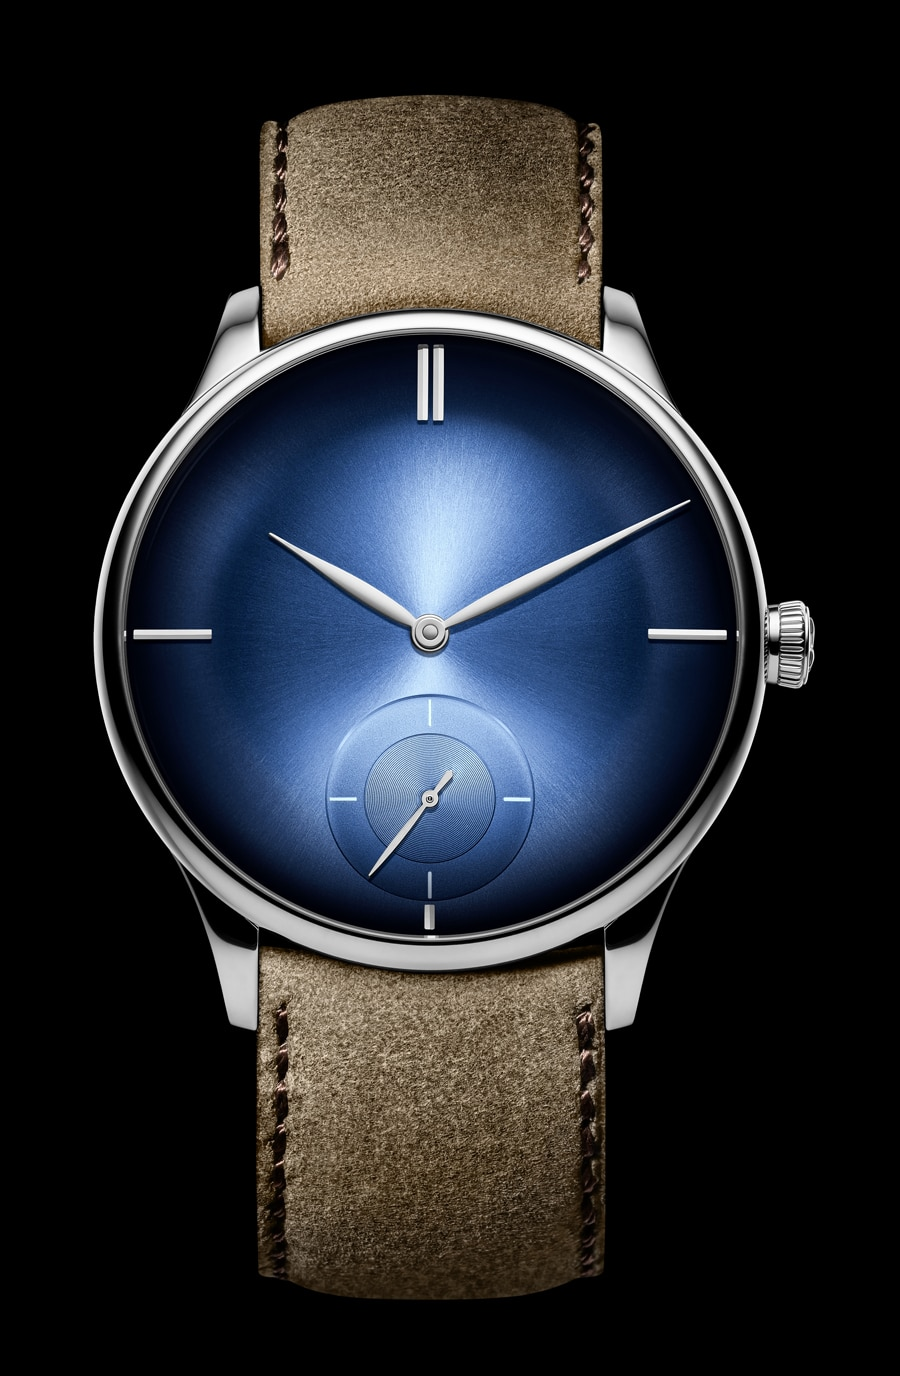 H. Moser & Cie.: Venturer Small Seconds Purity